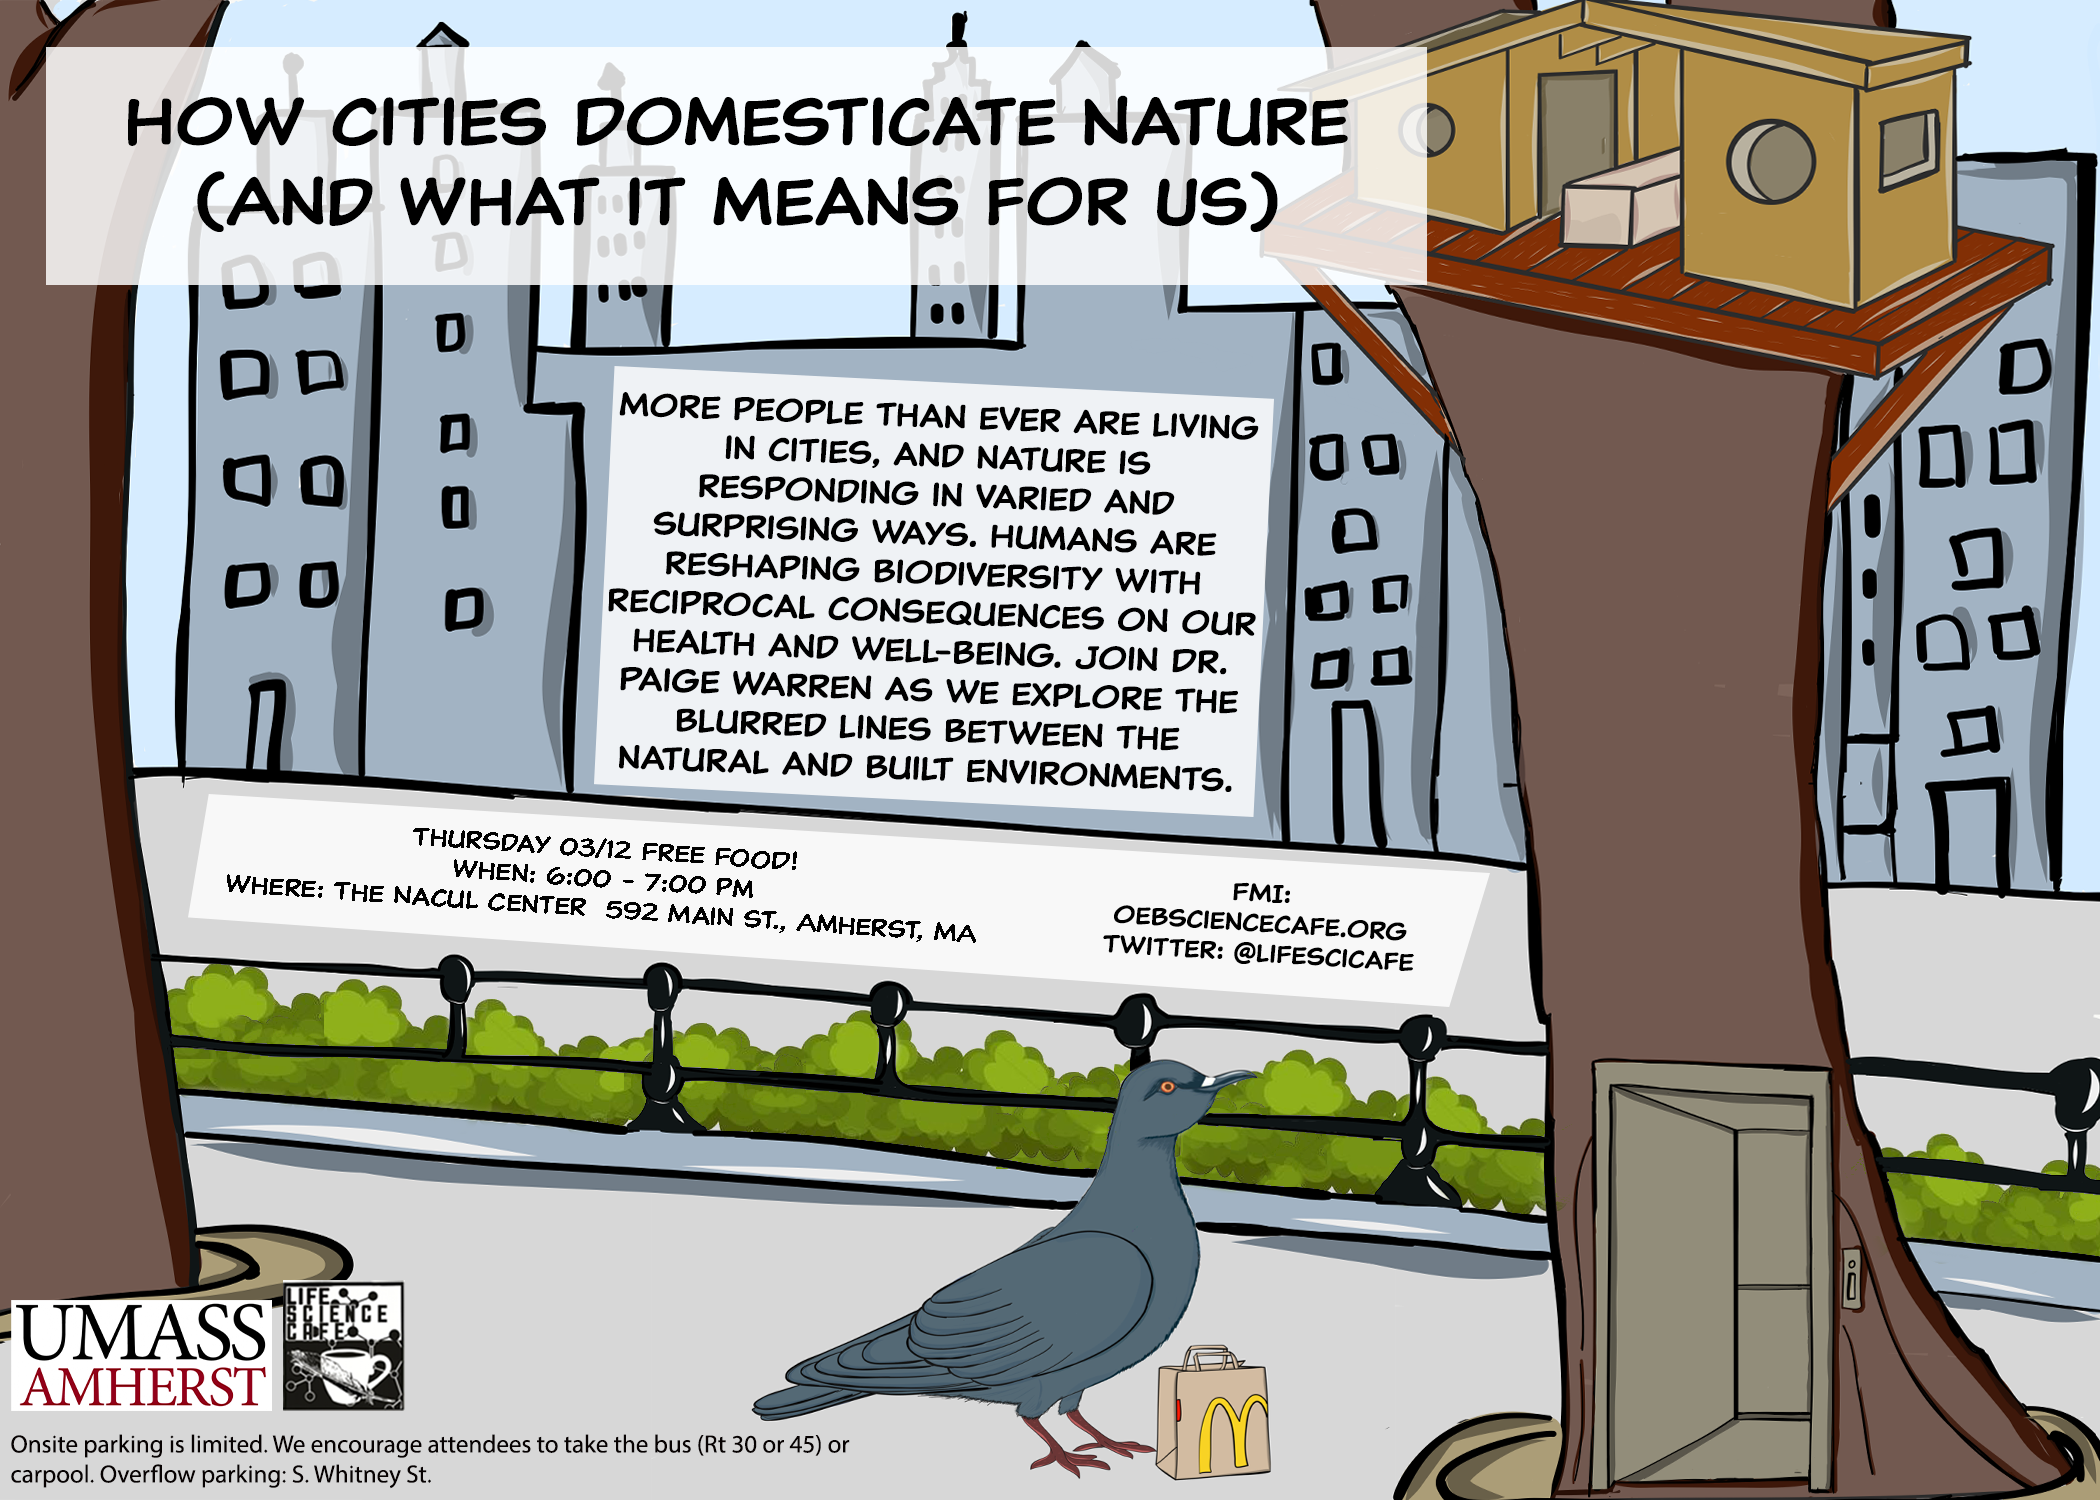 3/12 Science cafe: How cities domesticate nature (and what it means for us)